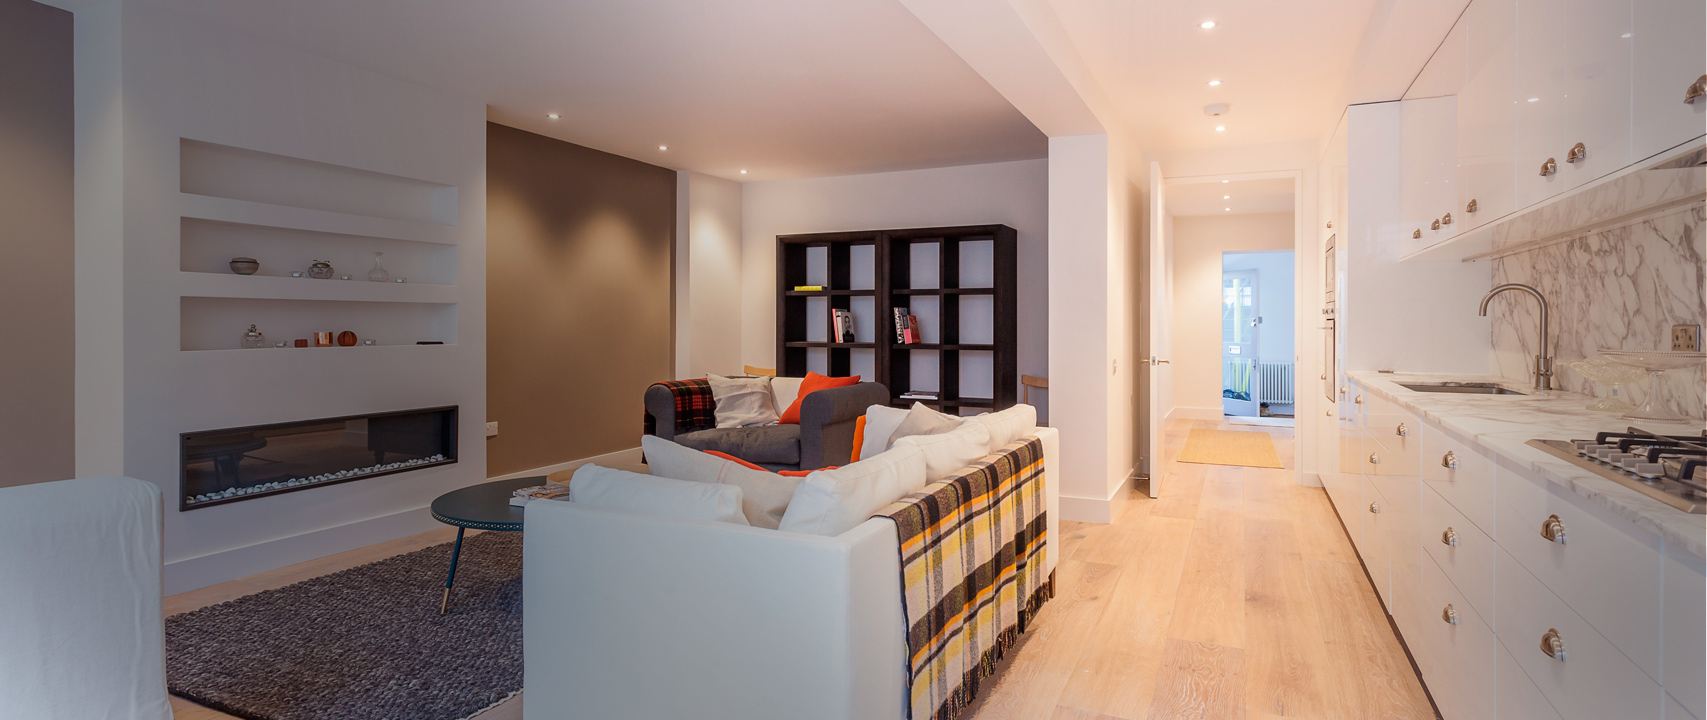 EXPERTISE IN BEAUTIFUL BASEMENT CONVERSIONS